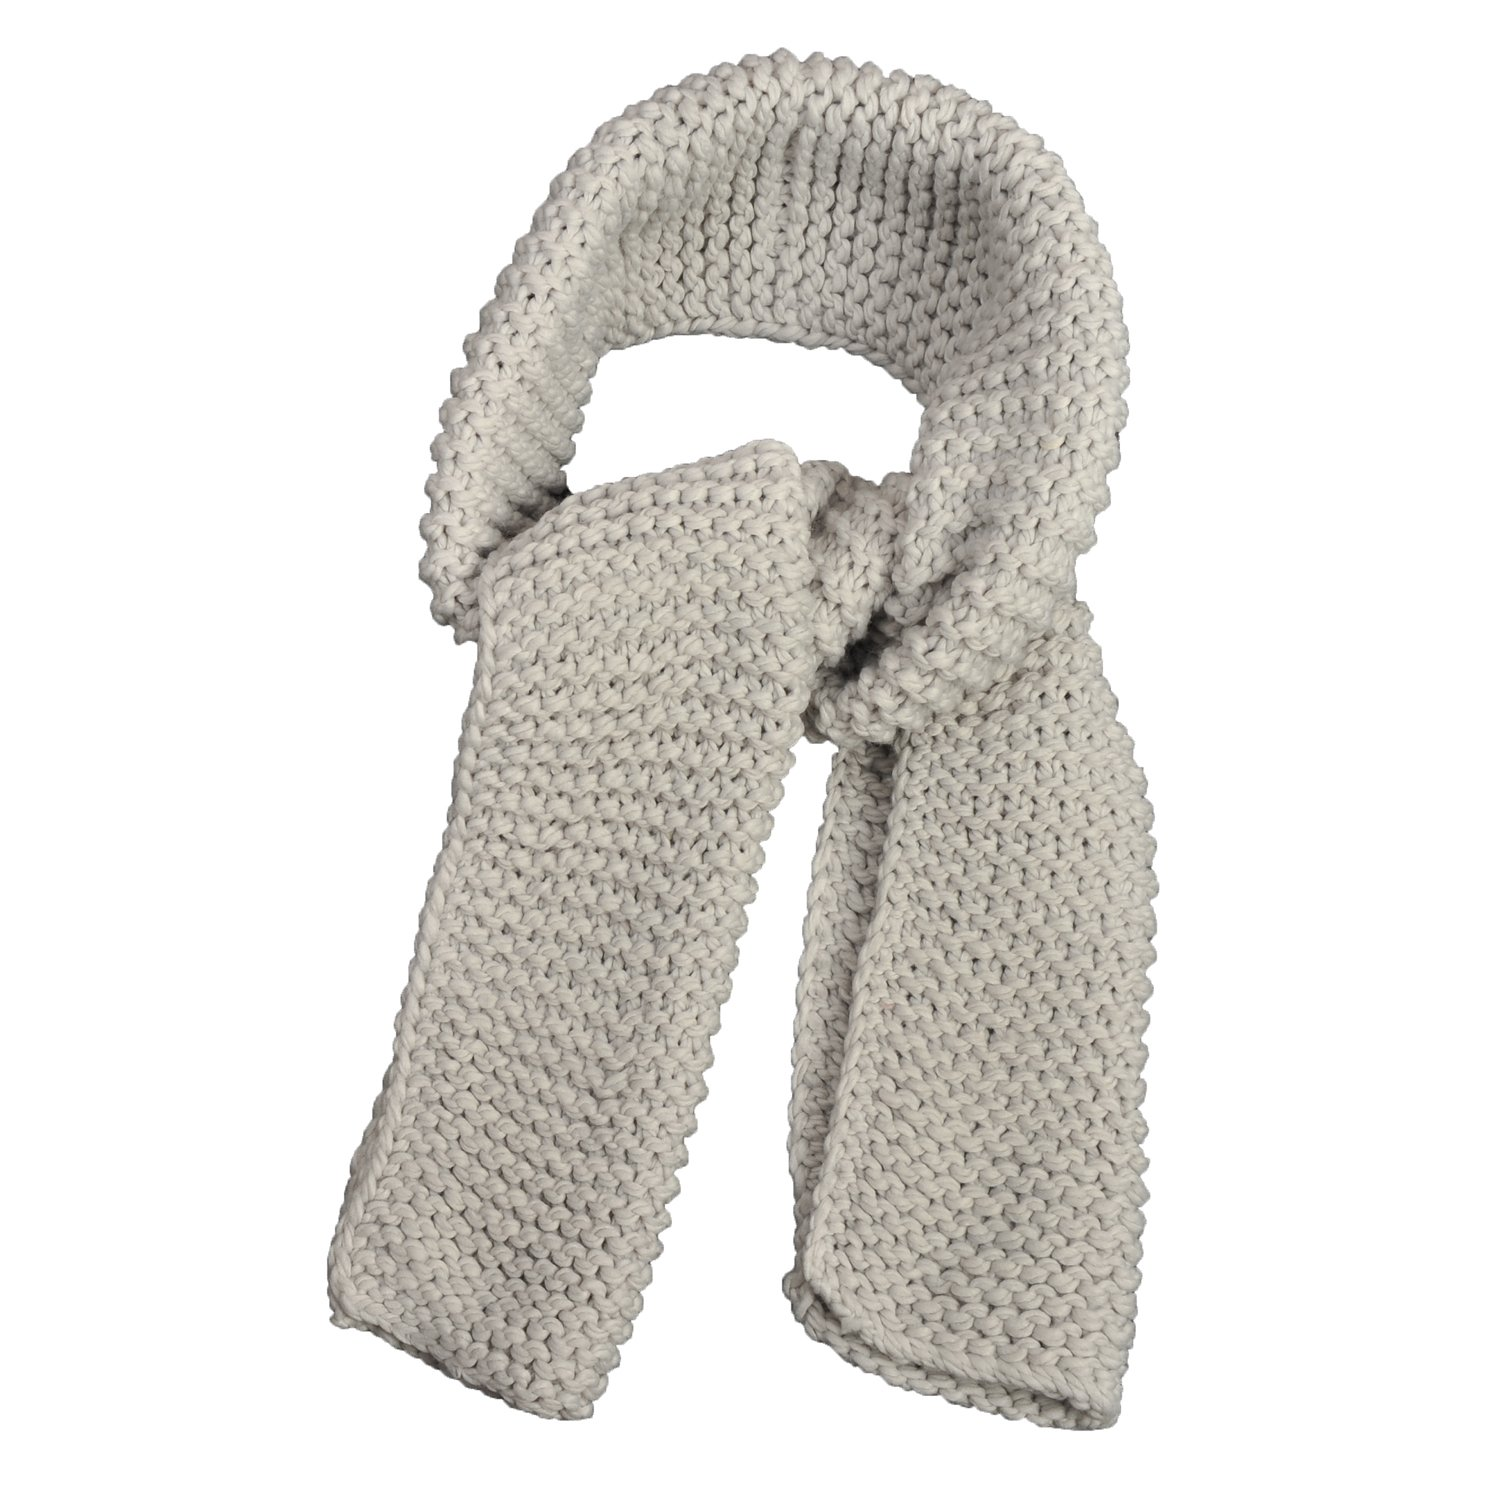 Knit Acrylic Fashion Trend Scarves For Celebrities Party